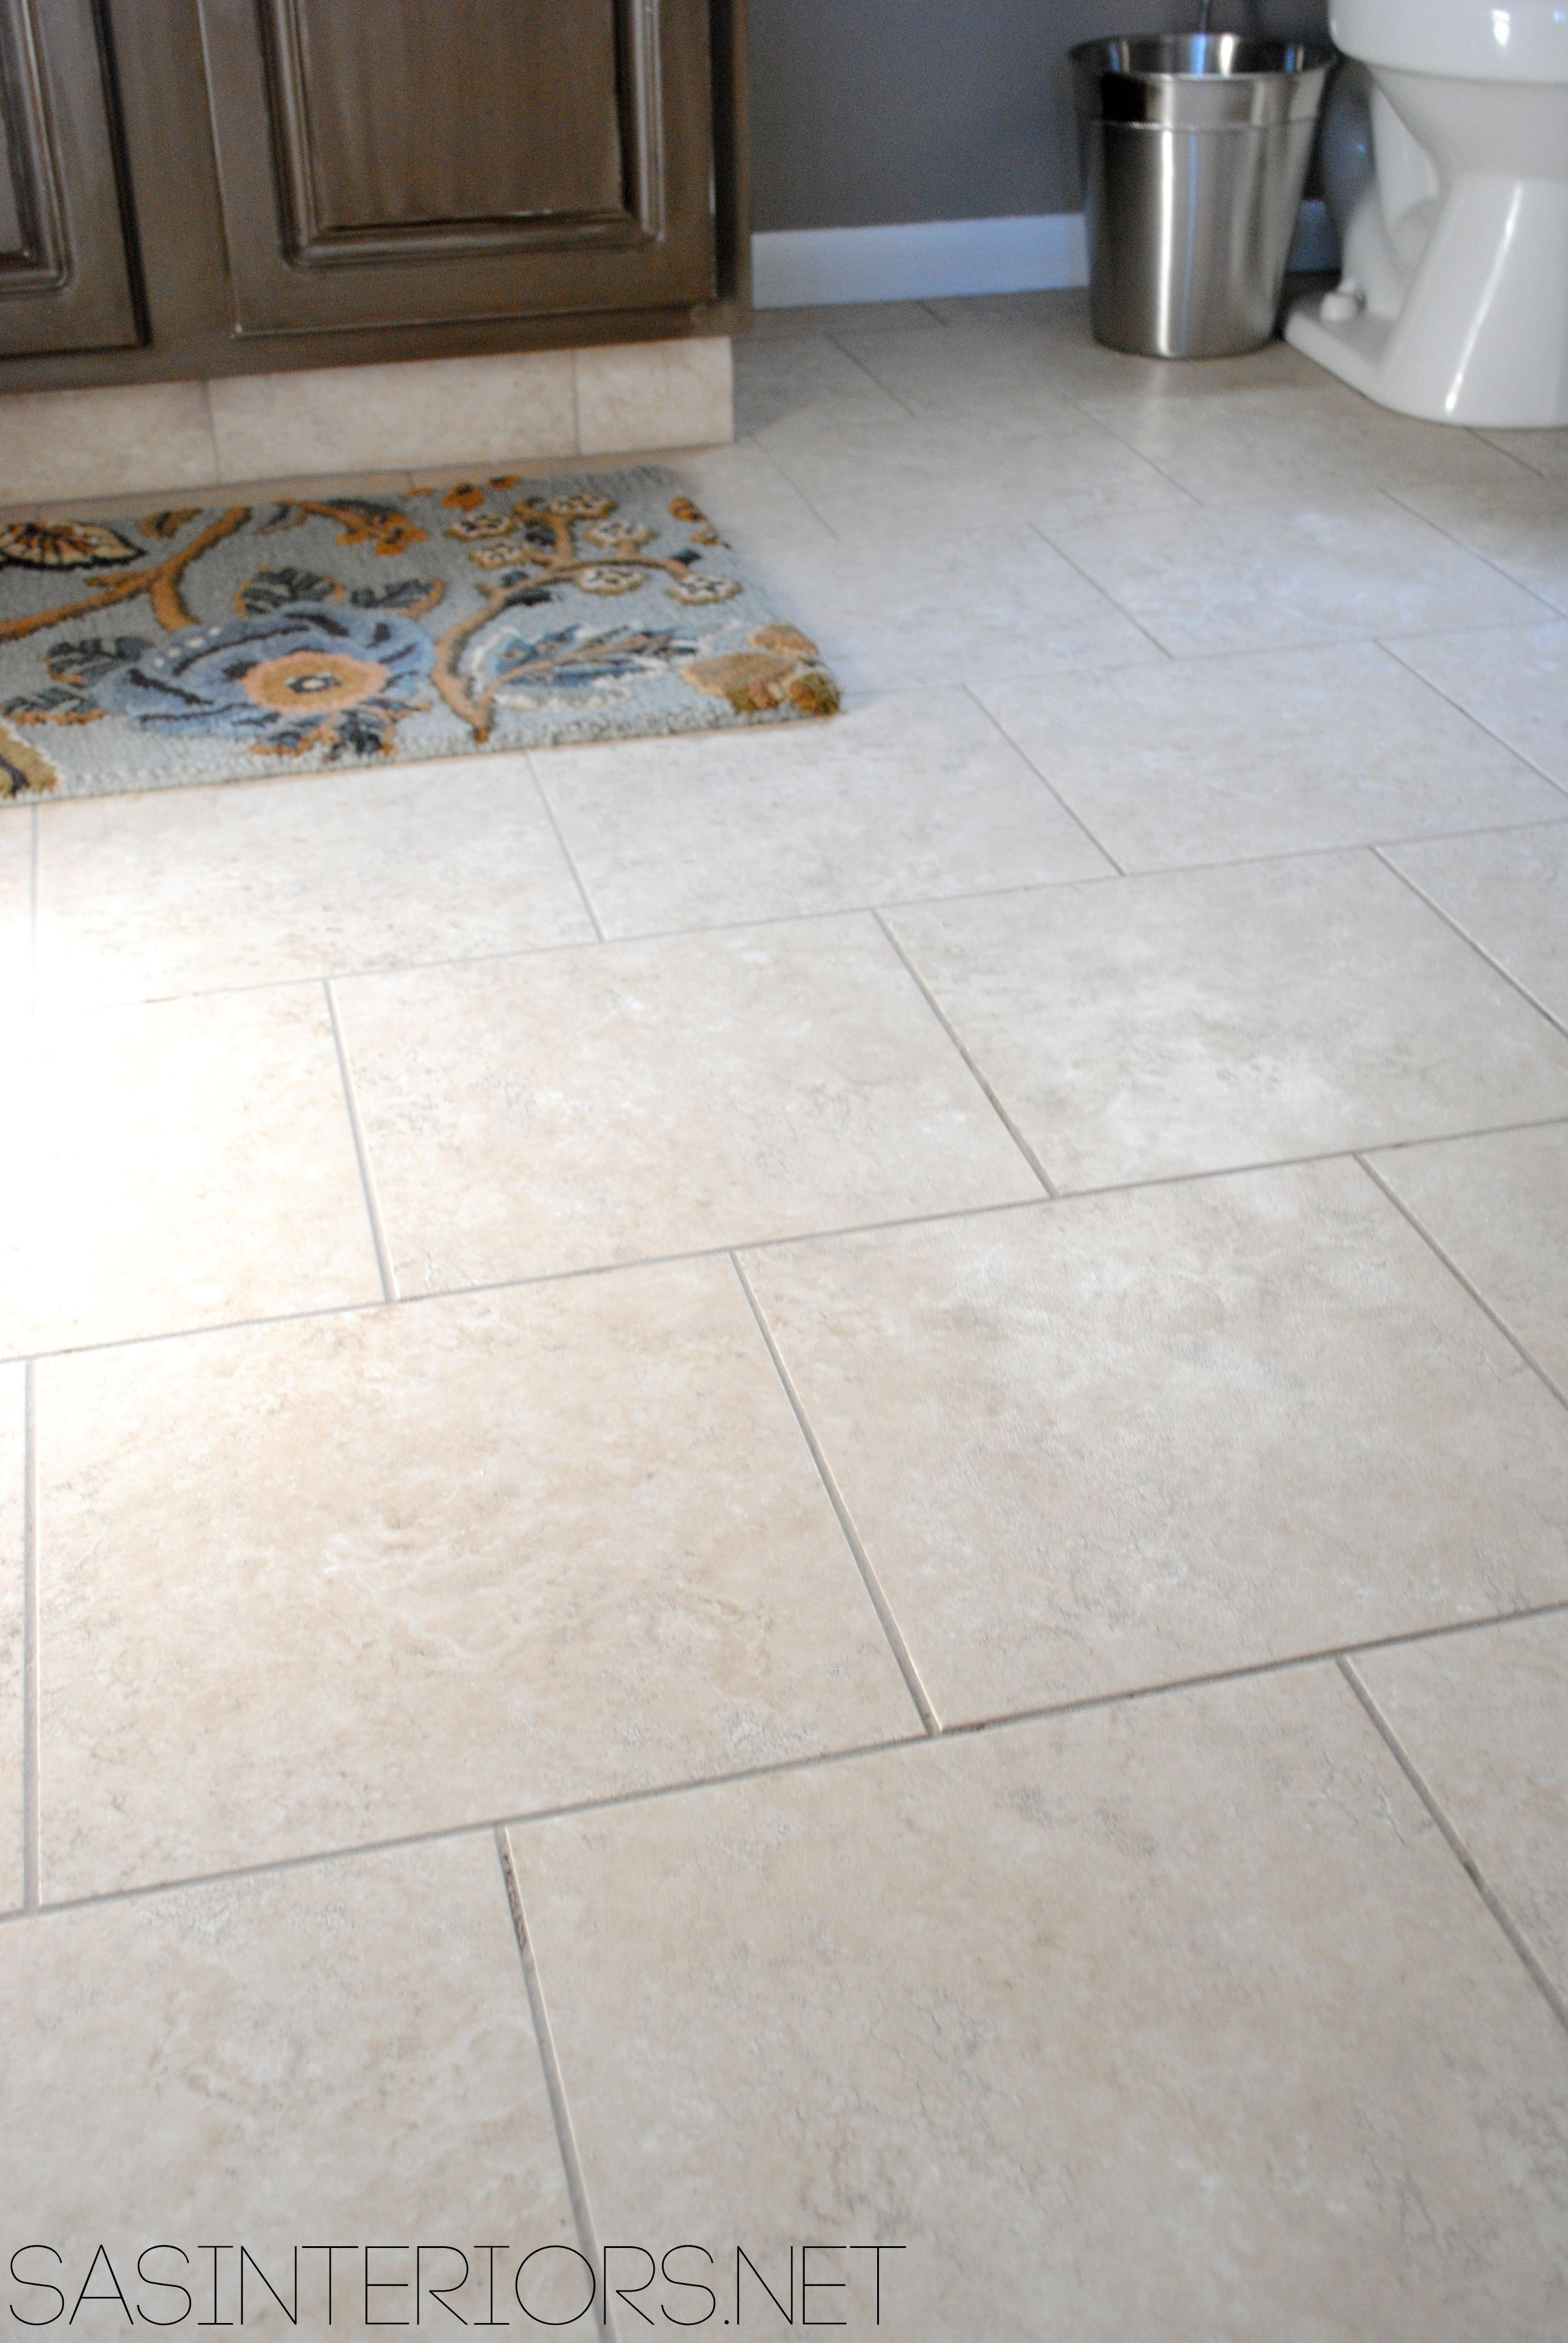 Exterior floor tile adhesive image collections tile flooring groutable self adhesive vinyl floor tiles httpnextsoft21 groutable self adhesive vinyl floor tiles doublecrazyfo image collections dailygadgetfo Images